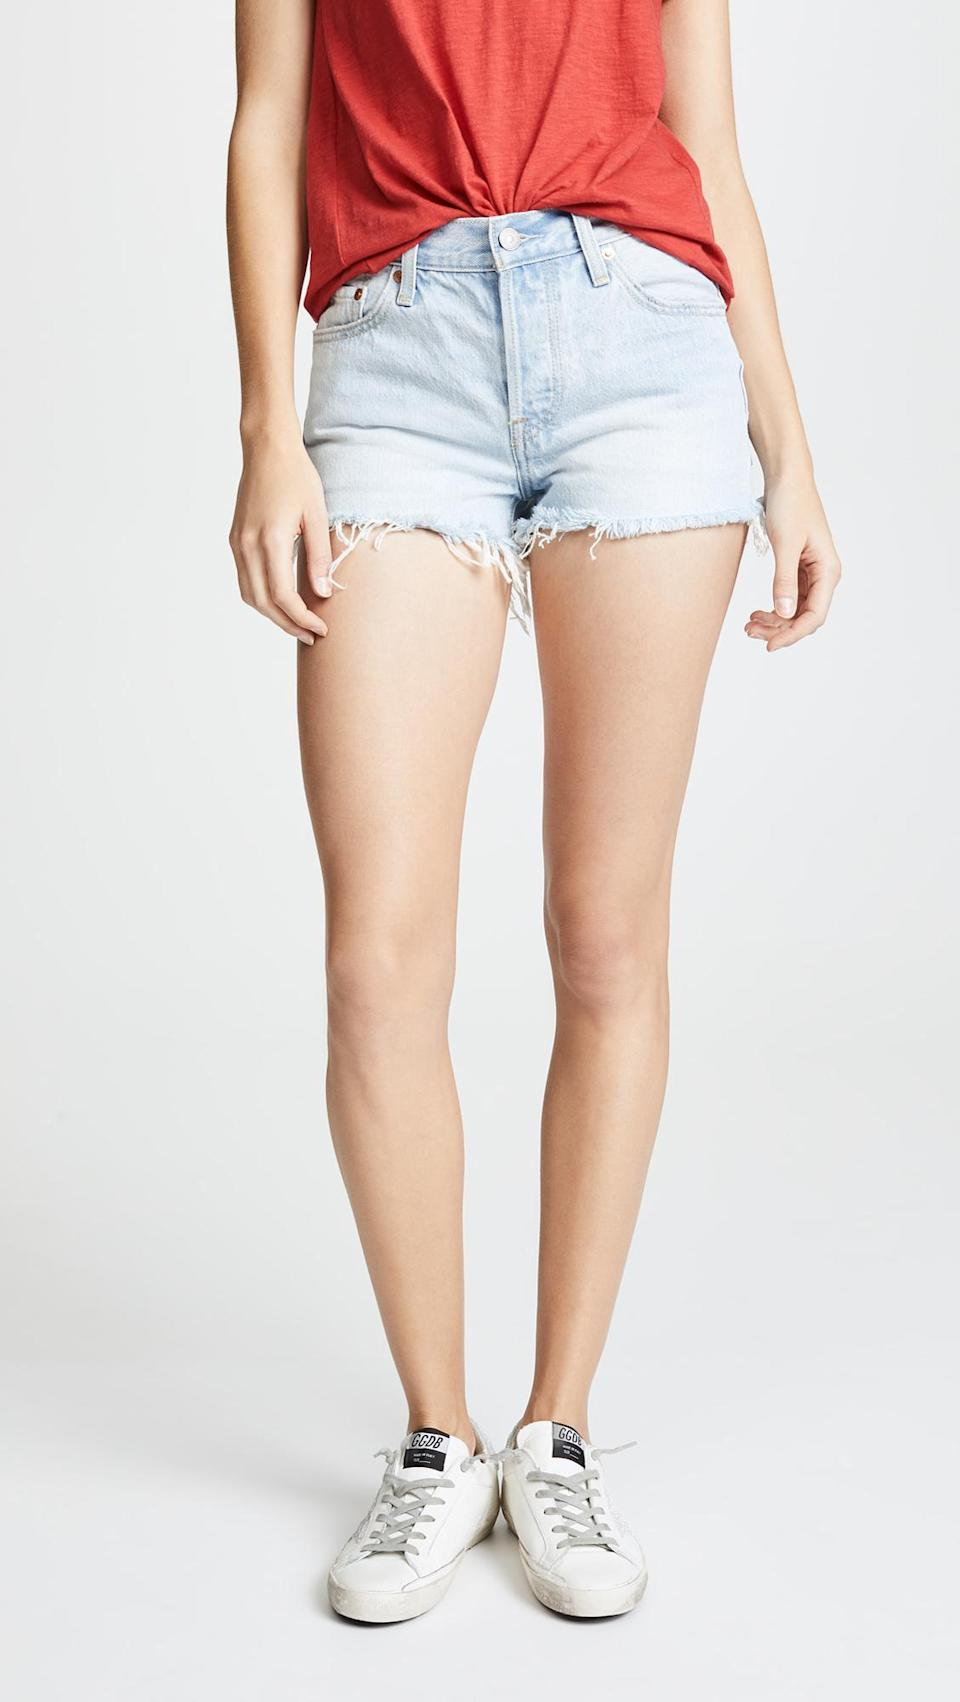 """<p>From Beyonce to Taylor Swift, these shorts are a celebrity-favorite, and now, they'll be your's too.</p><p>Buy it <a rel=""""nofollow noopener"""" href=""""https://www.amazon.com/dp/B07B3SDFN7?ie=UTF8&camp=1789&creative=9325&linkCode=as2&creativeASIN=B07B3SDFN7&tag=instycom00-20&ascsubtag=029cd223c961c8de5f42bbfdf1af55d4"""" target=""""_blank"""" data-ylk=""""slk:here"""" class=""""link rapid-noclick-resp"""">here</a> for $60.</p>"""